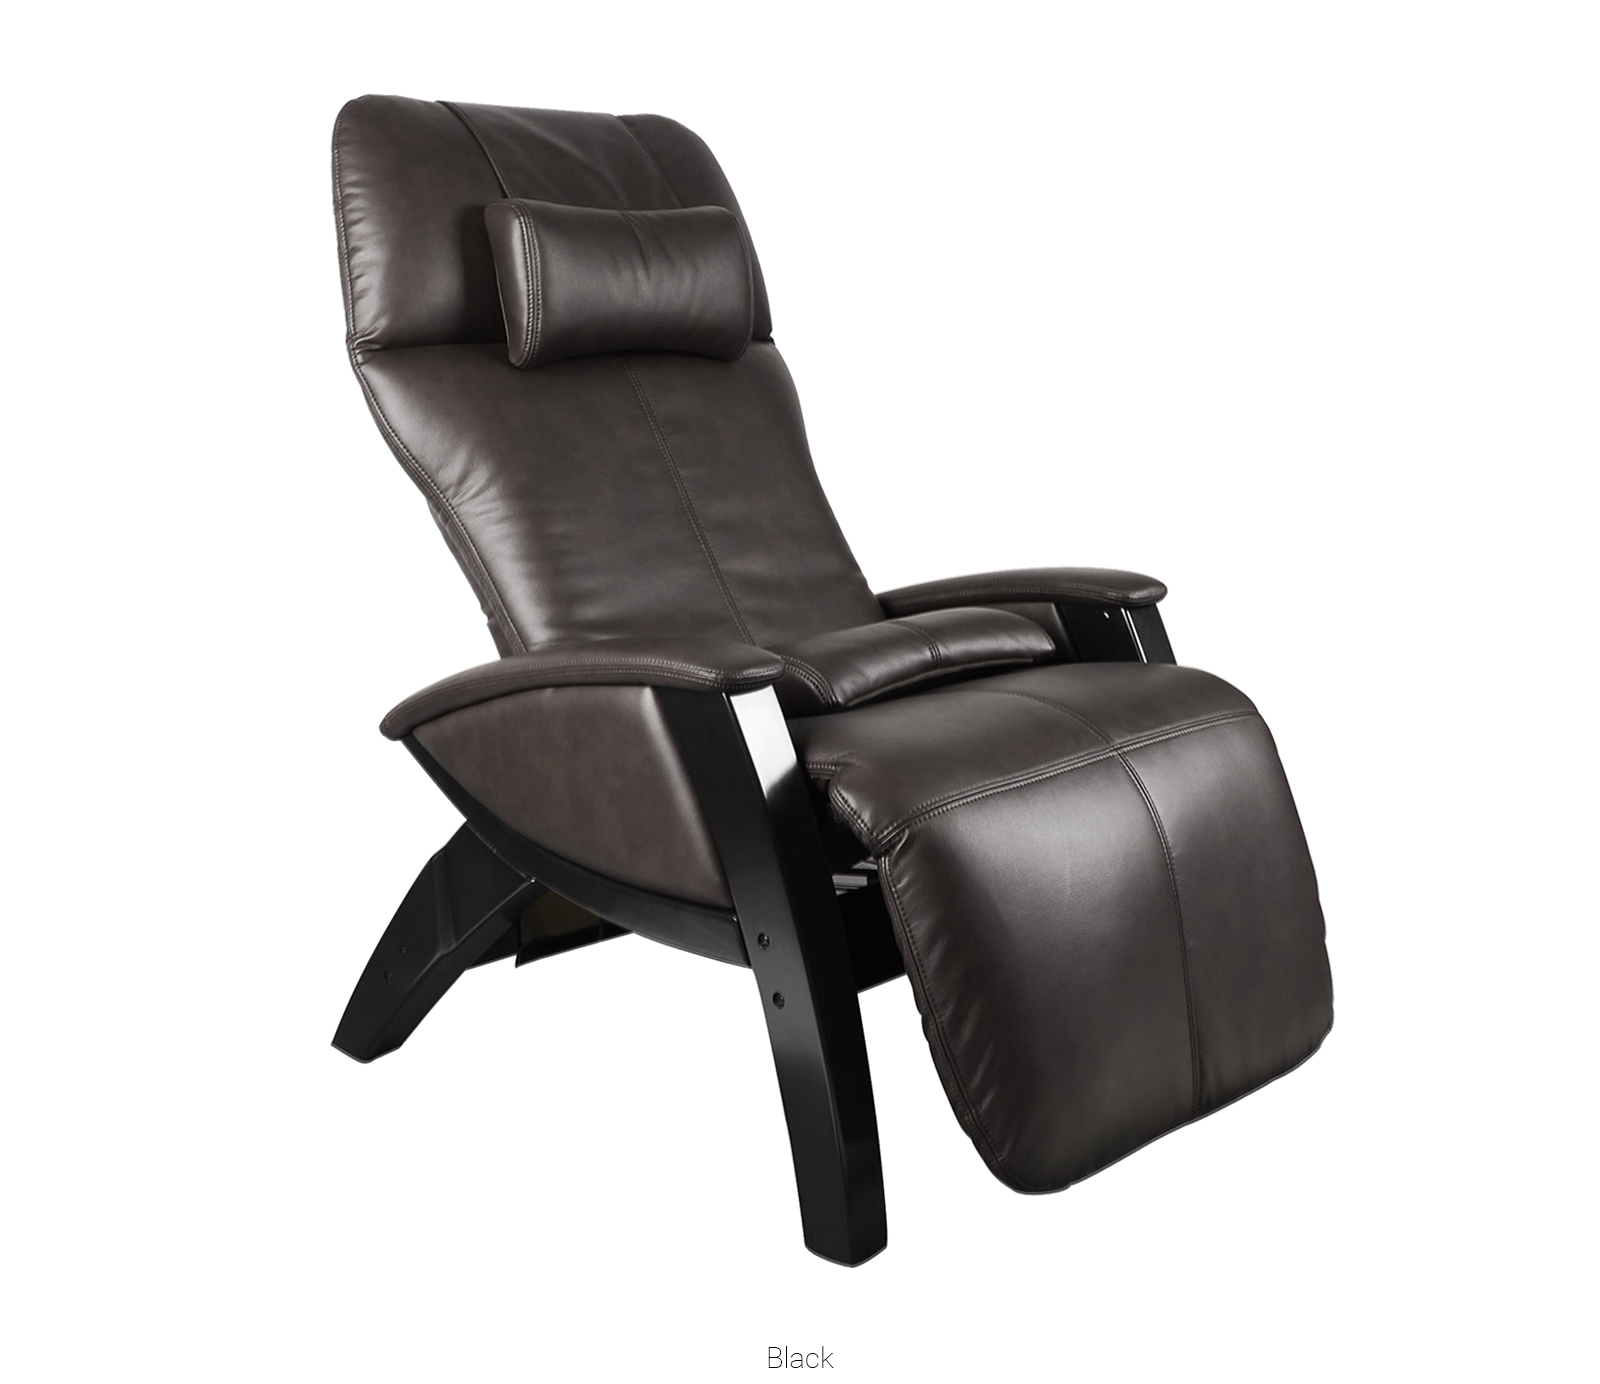 Cozzia AG 6000 The Zero Gravity Vibration Massage Chair